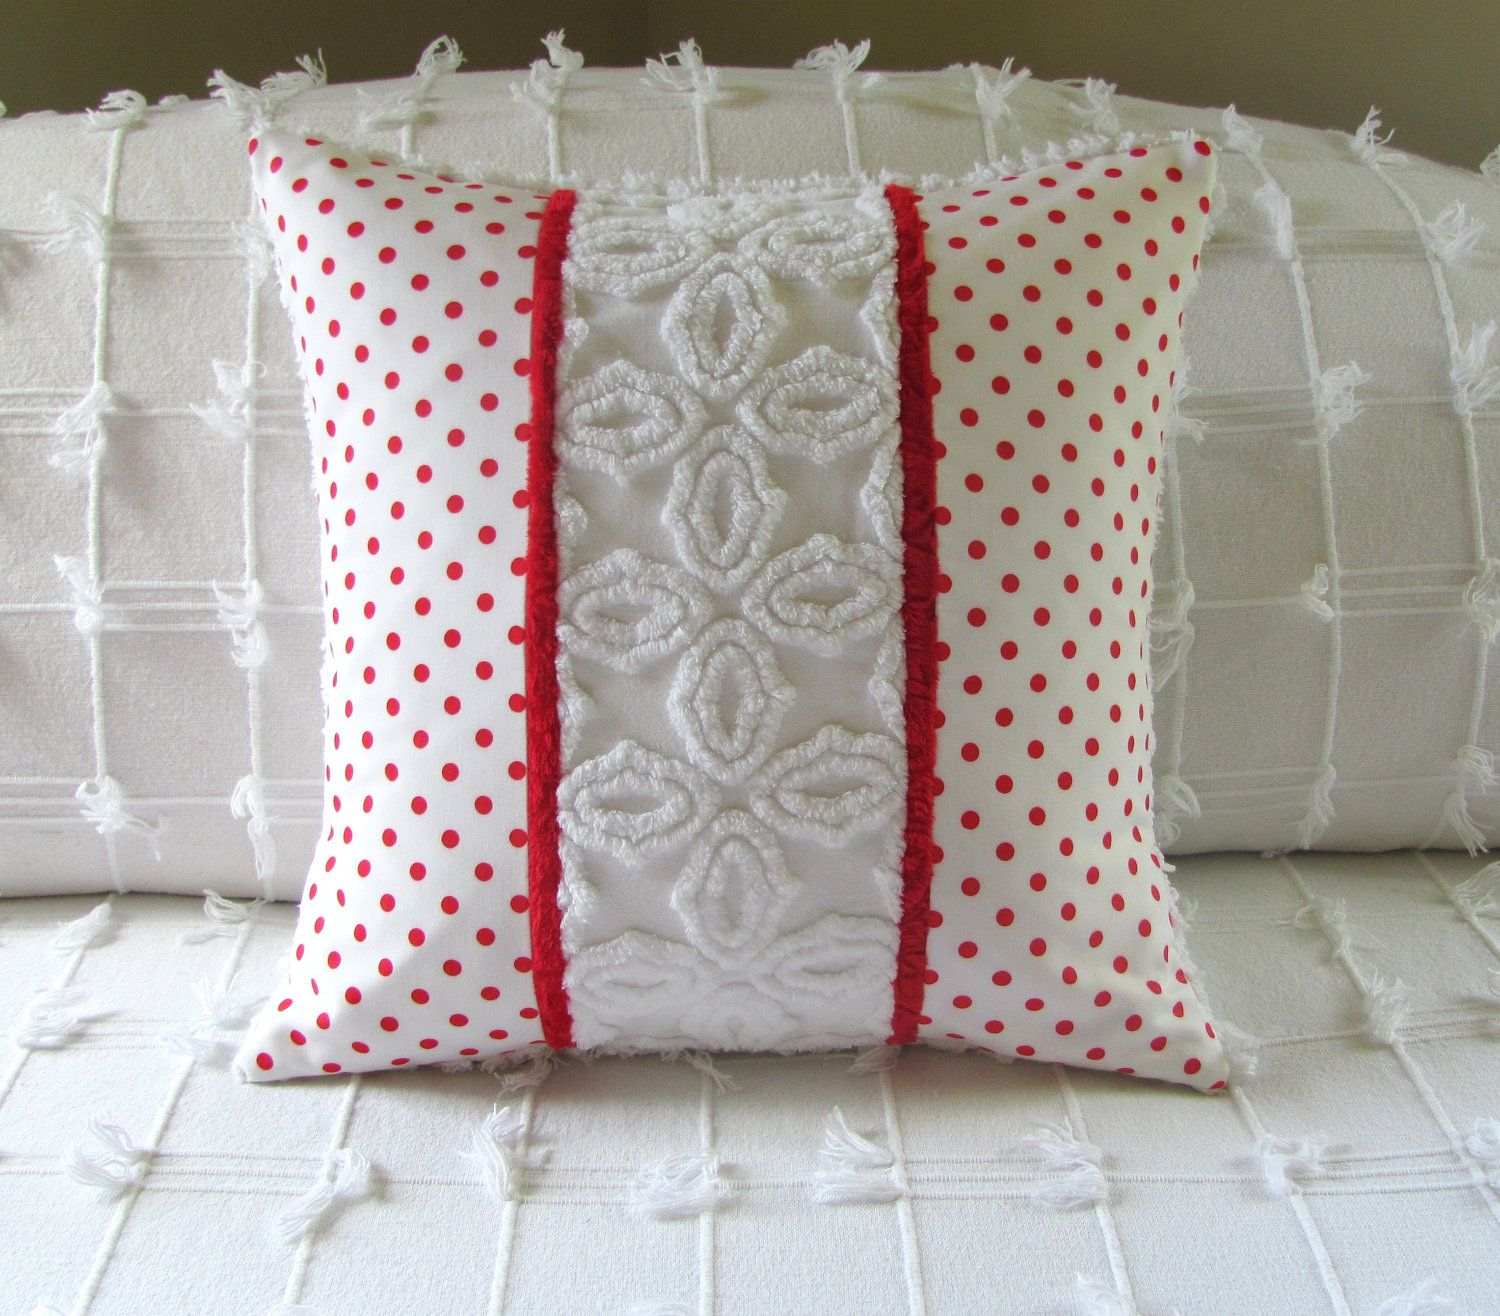 chenille pillow cover 16 X 16 RED DOTS Christmas pillow red vintage chenille cushion cover. & Pin by 🌈Vonnie🦄 Davis on Color Combos❤Red♡White | Pinterest ... pillowsntoast.com